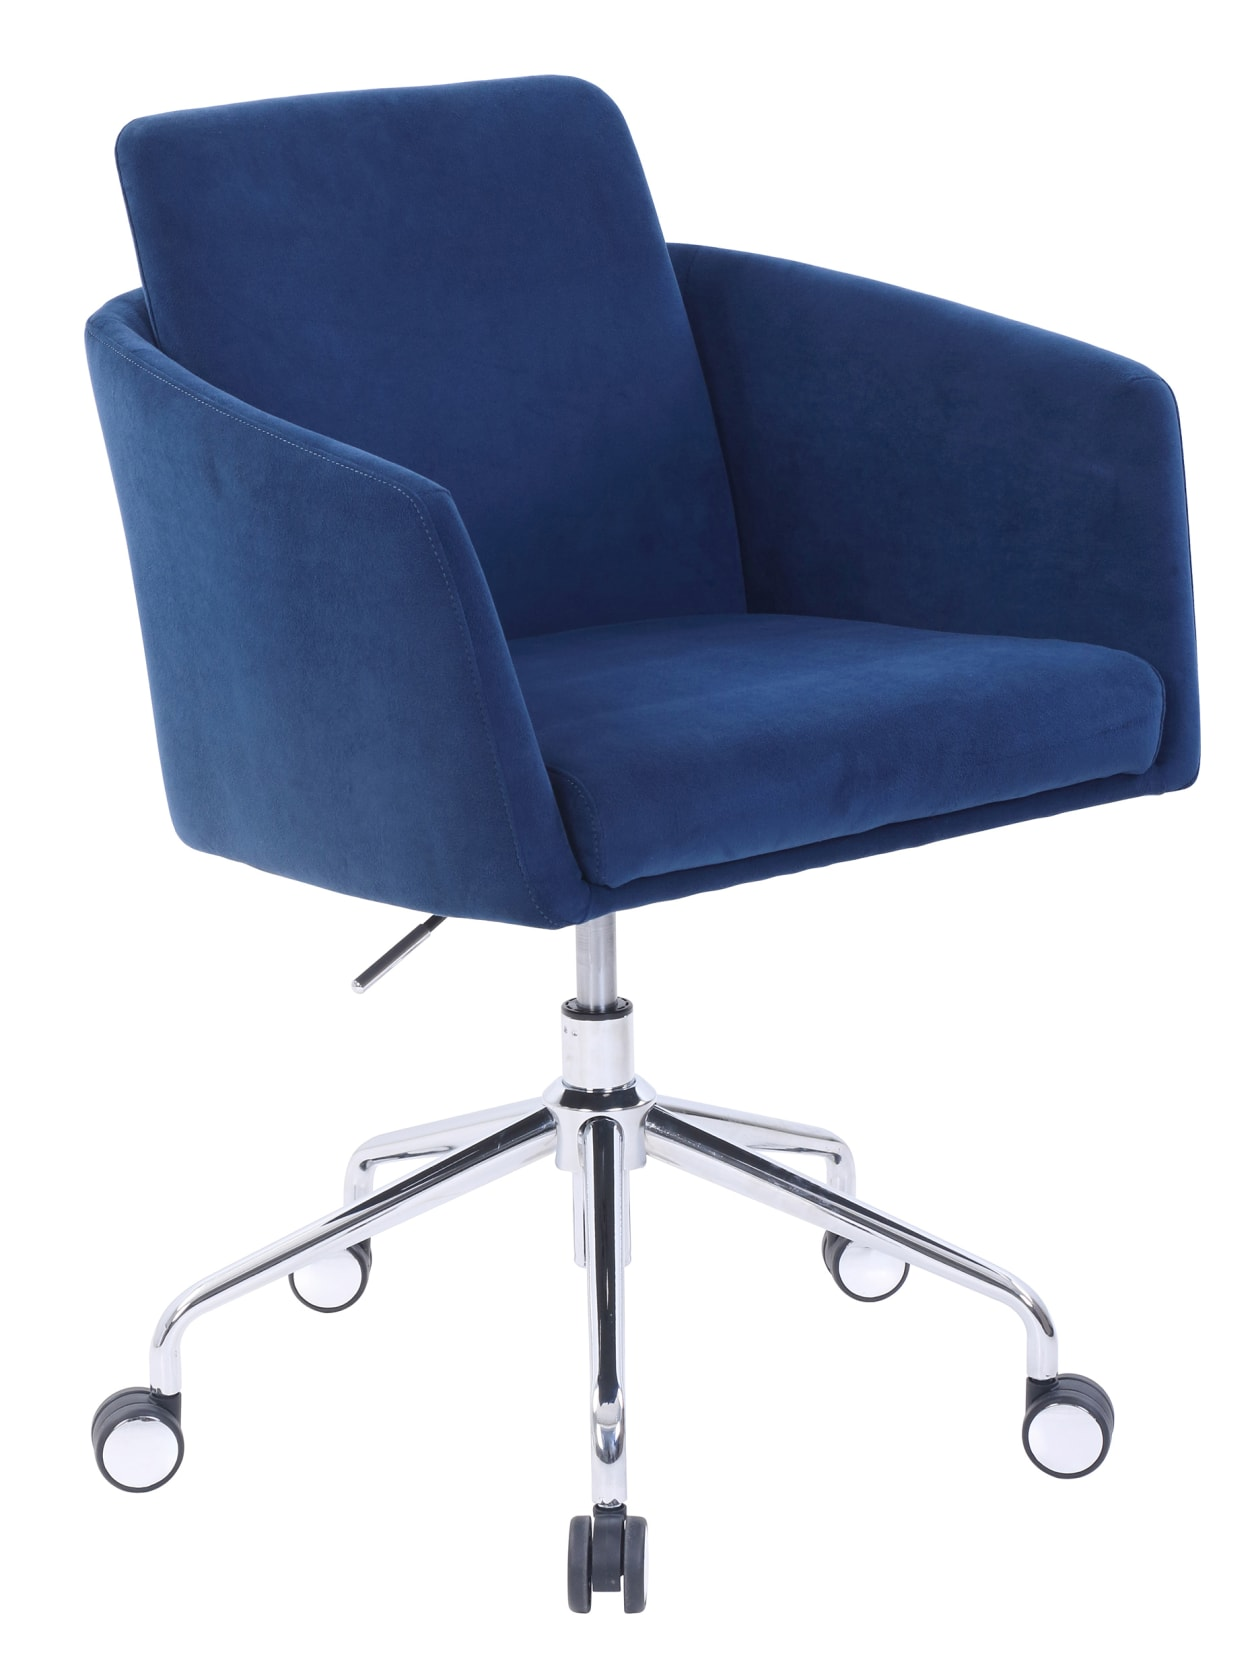 Elle Decor Vevey Velvet Mid Back Chair Navy Office Depot